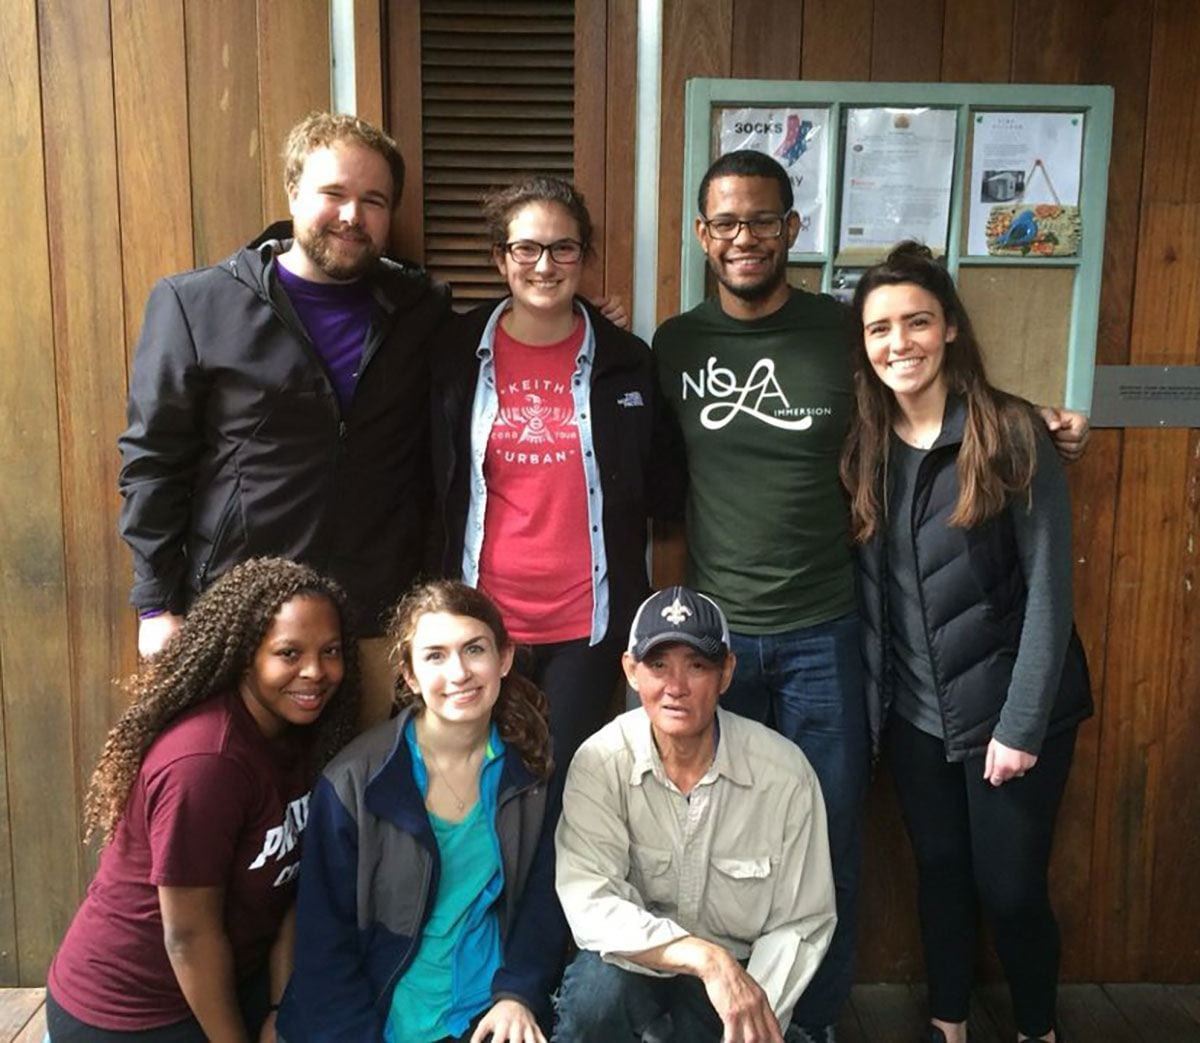 Ron De La Rosa '18, standing, second from right, took part in the NOLA immersion service project in New Orleans over winter break with other PC students and members of the Campus Ministry staff.